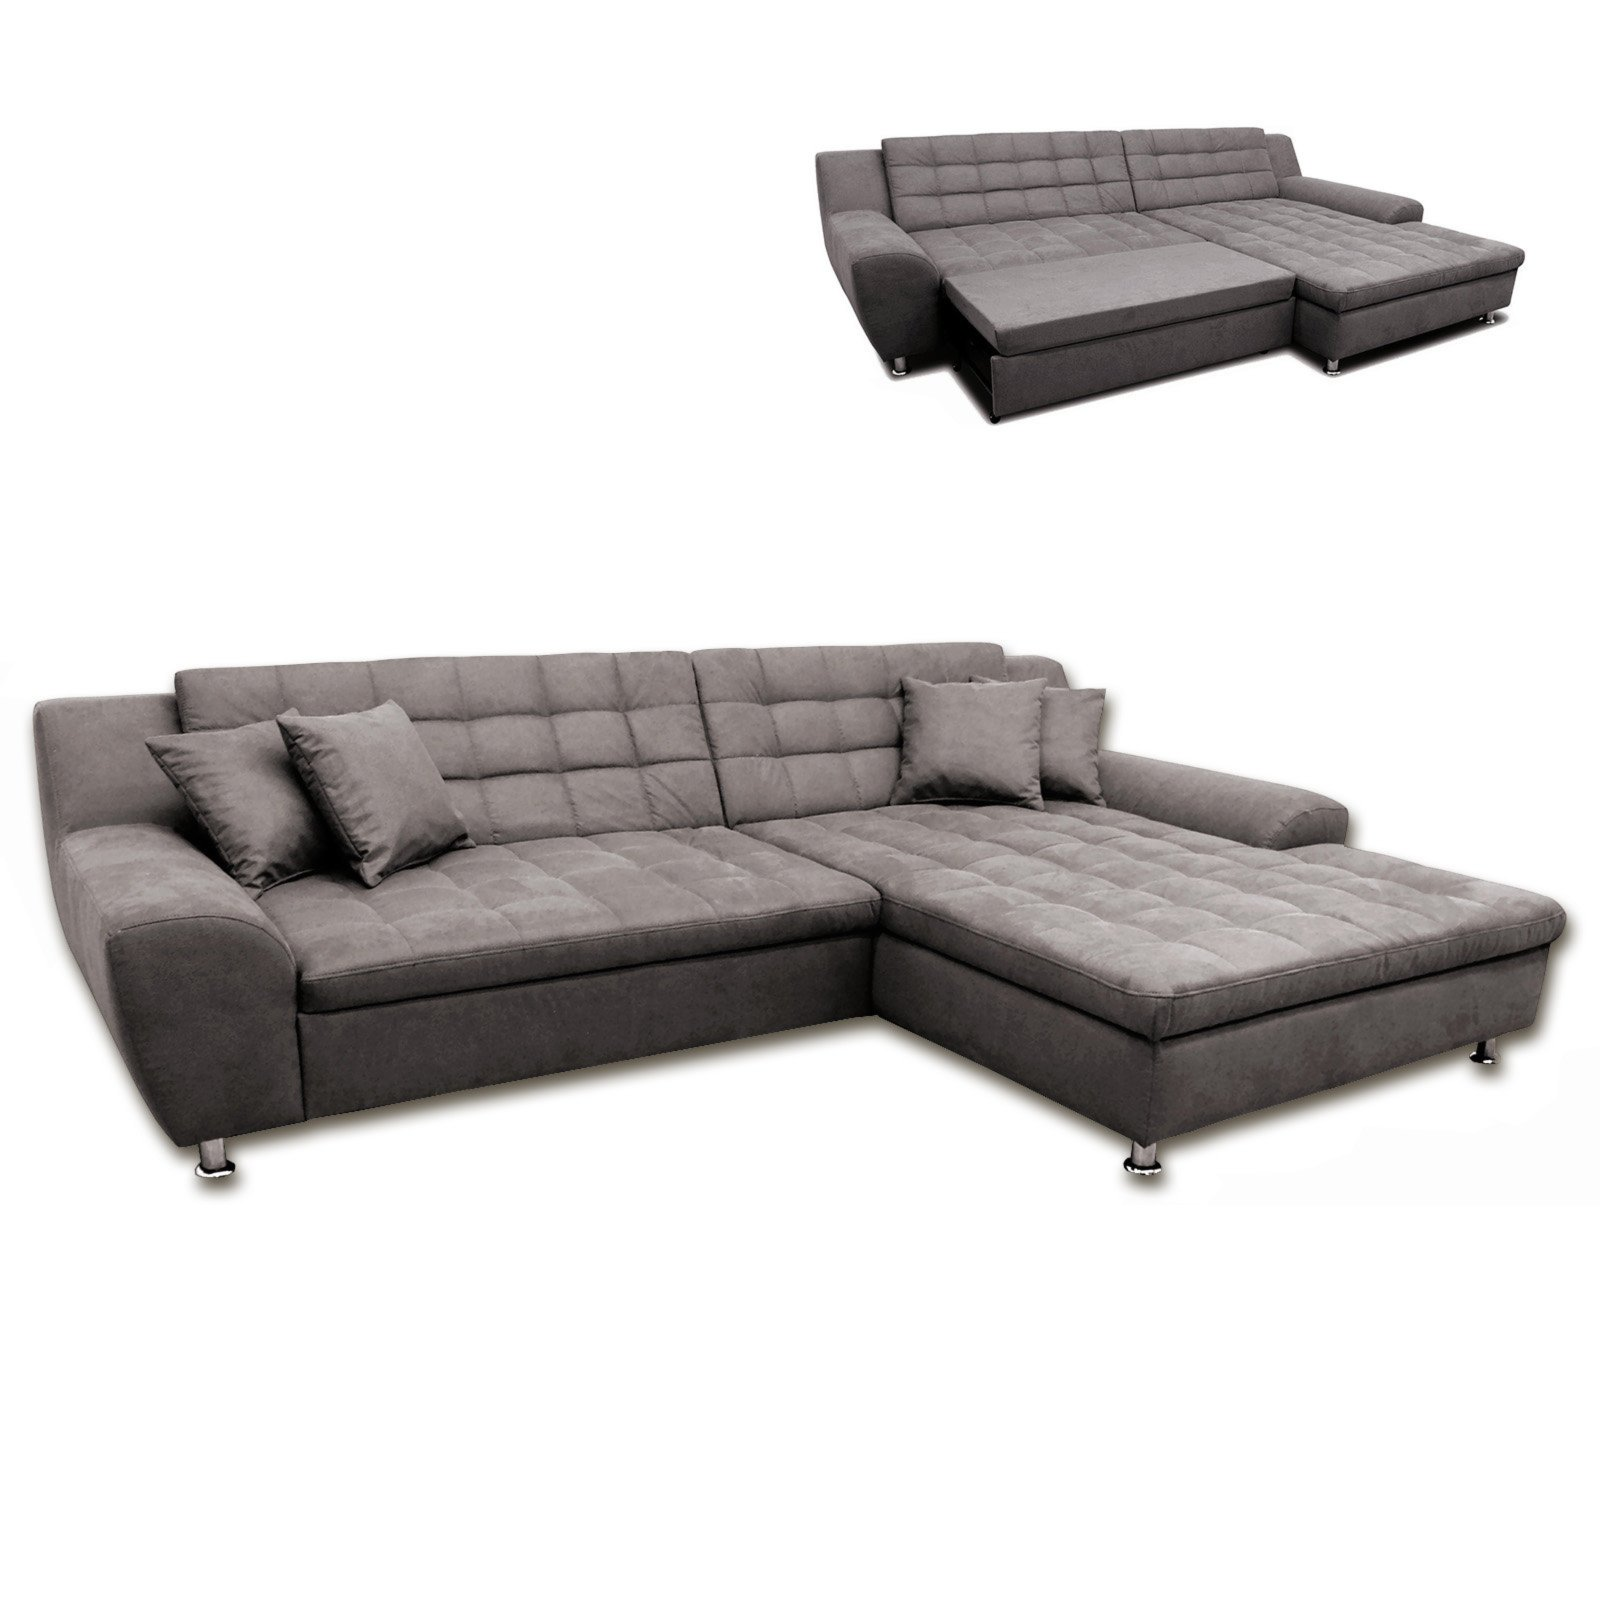 ecksofa braun liegefunktion recamiere rechts ecksofas l form sofas couches m bel. Black Bedroom Furniture Sets. Home Design Ideas